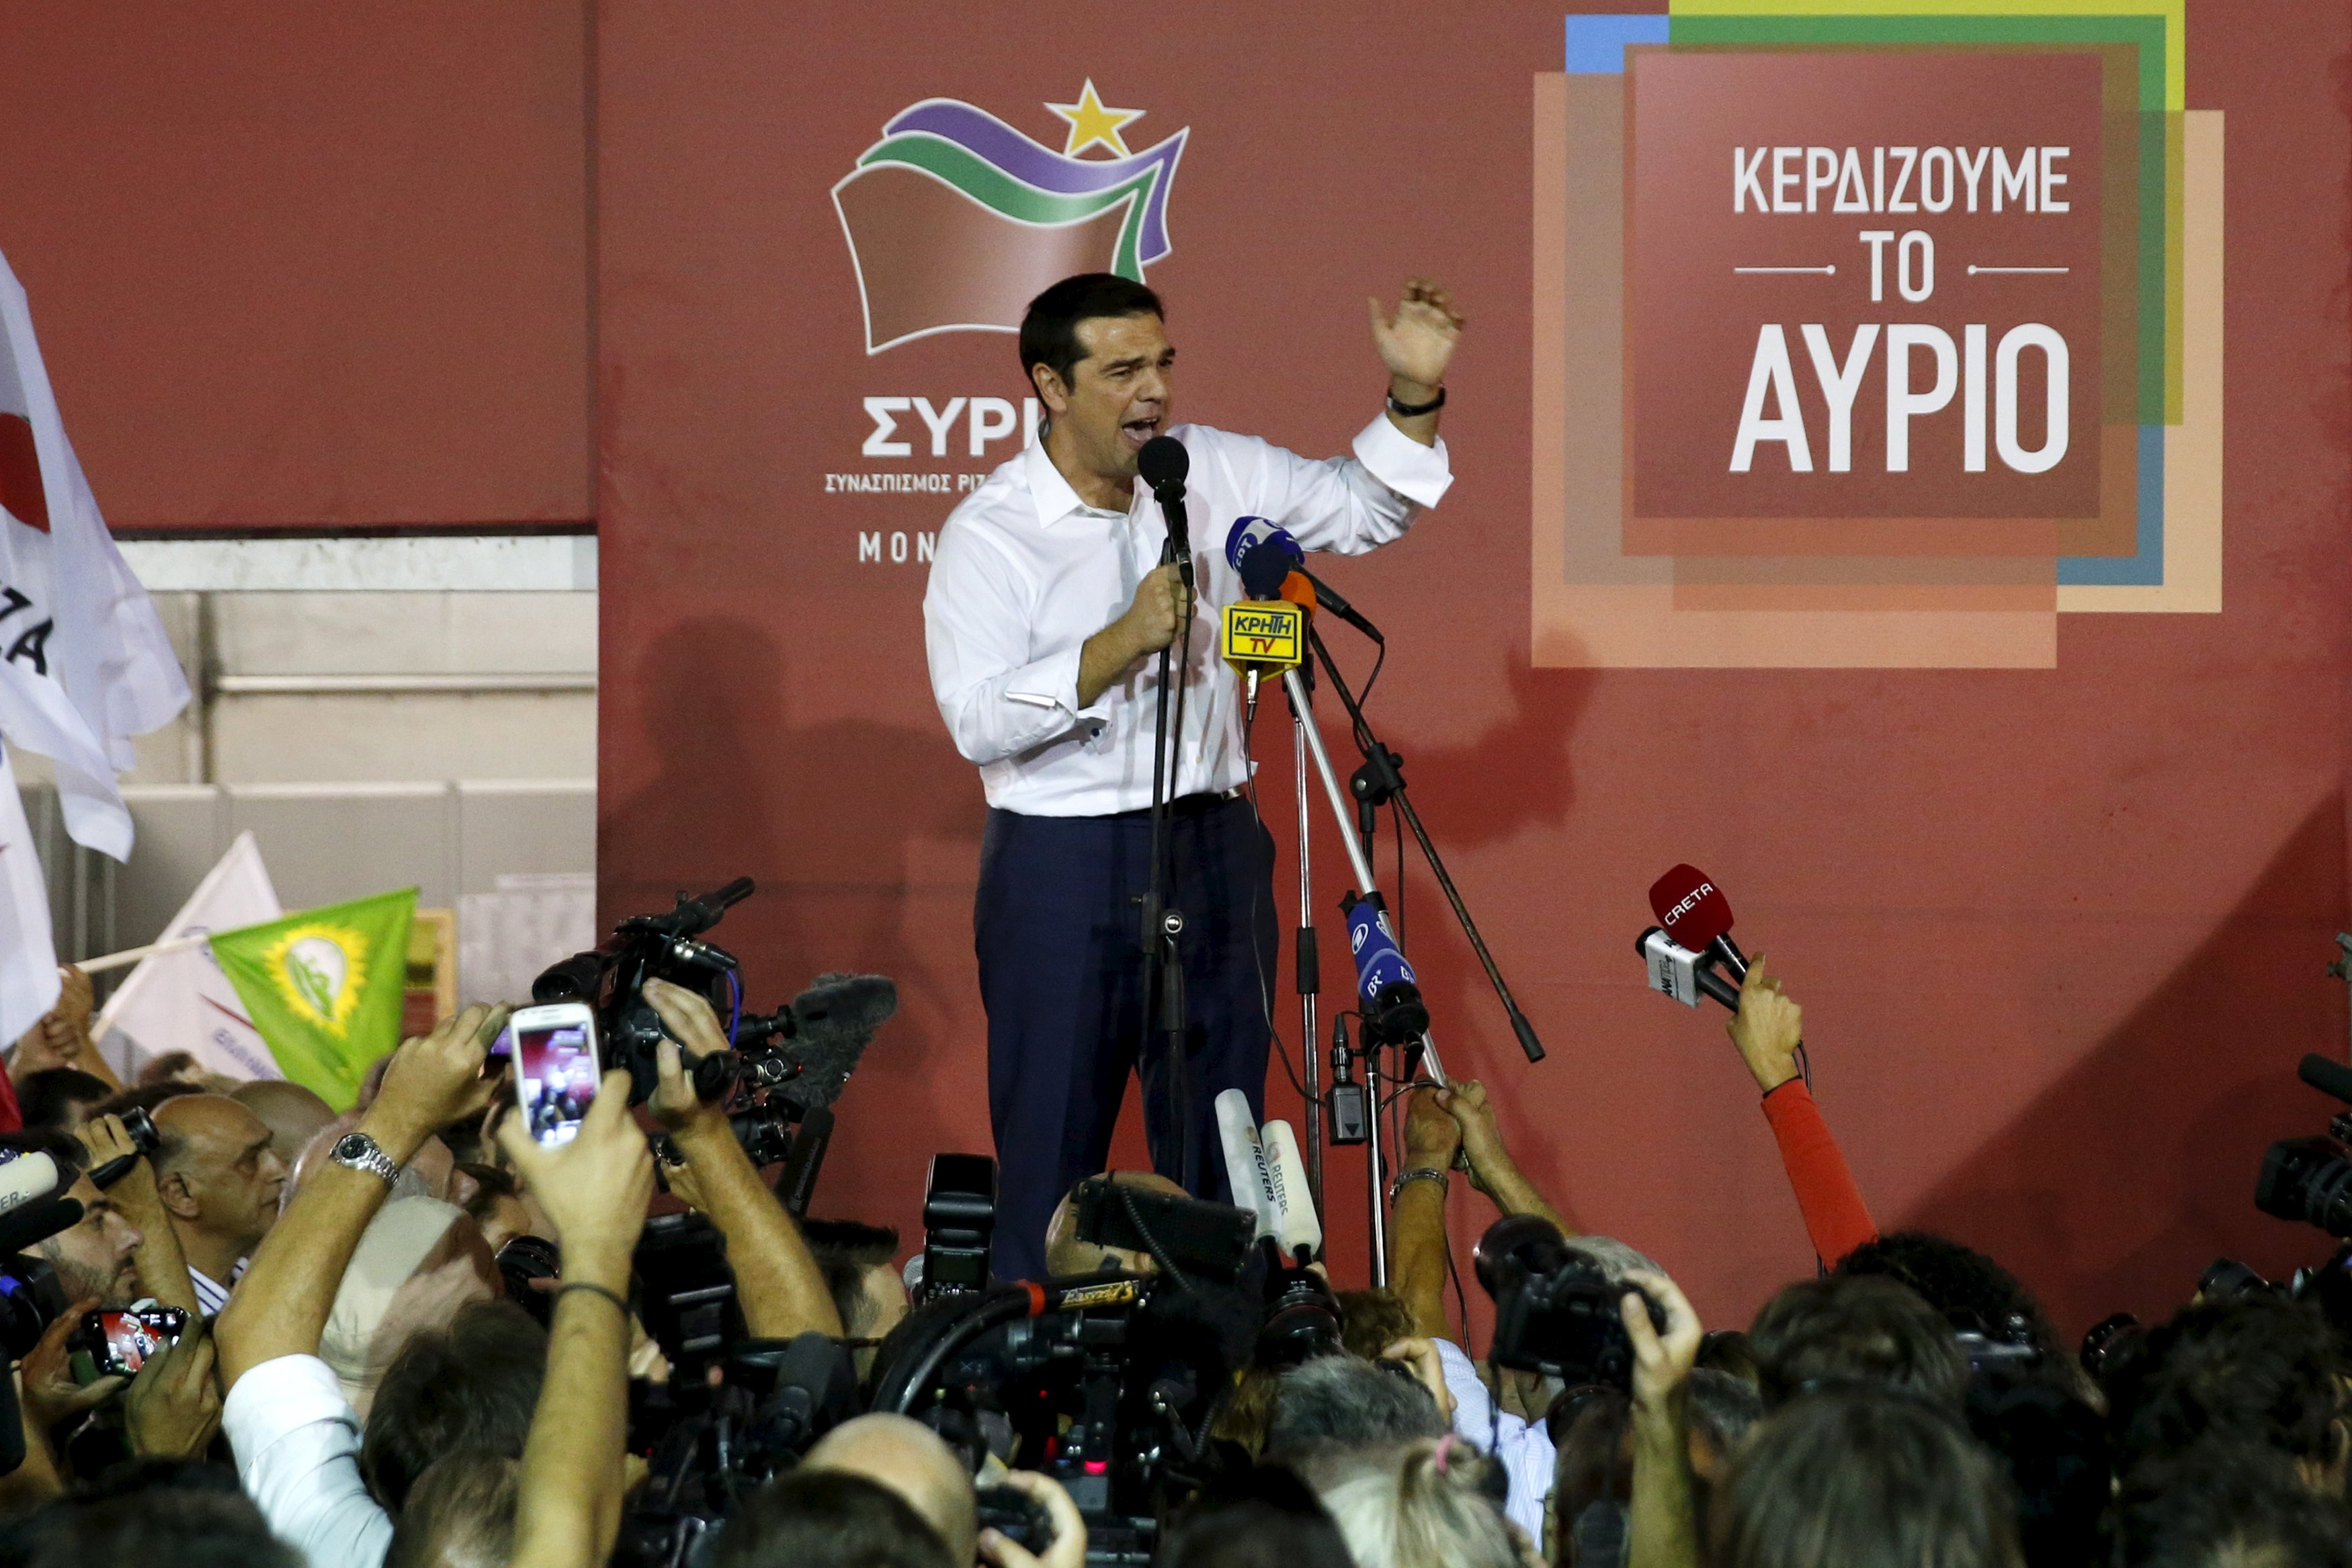 Former Greek prime minister and leader of leftist Syriza party Alexis Tsipras addresses supporters after winning the general election in Athens, Greece, September 20, 2015. Greek voters returned Tsipras to power with a strong election victory on Sunday, ensuring the charismatic leftist remains Greece's dominant political figure despite caving in to European demands for a bailout he once opposed. REUTERS/Alkis Konstantinidis